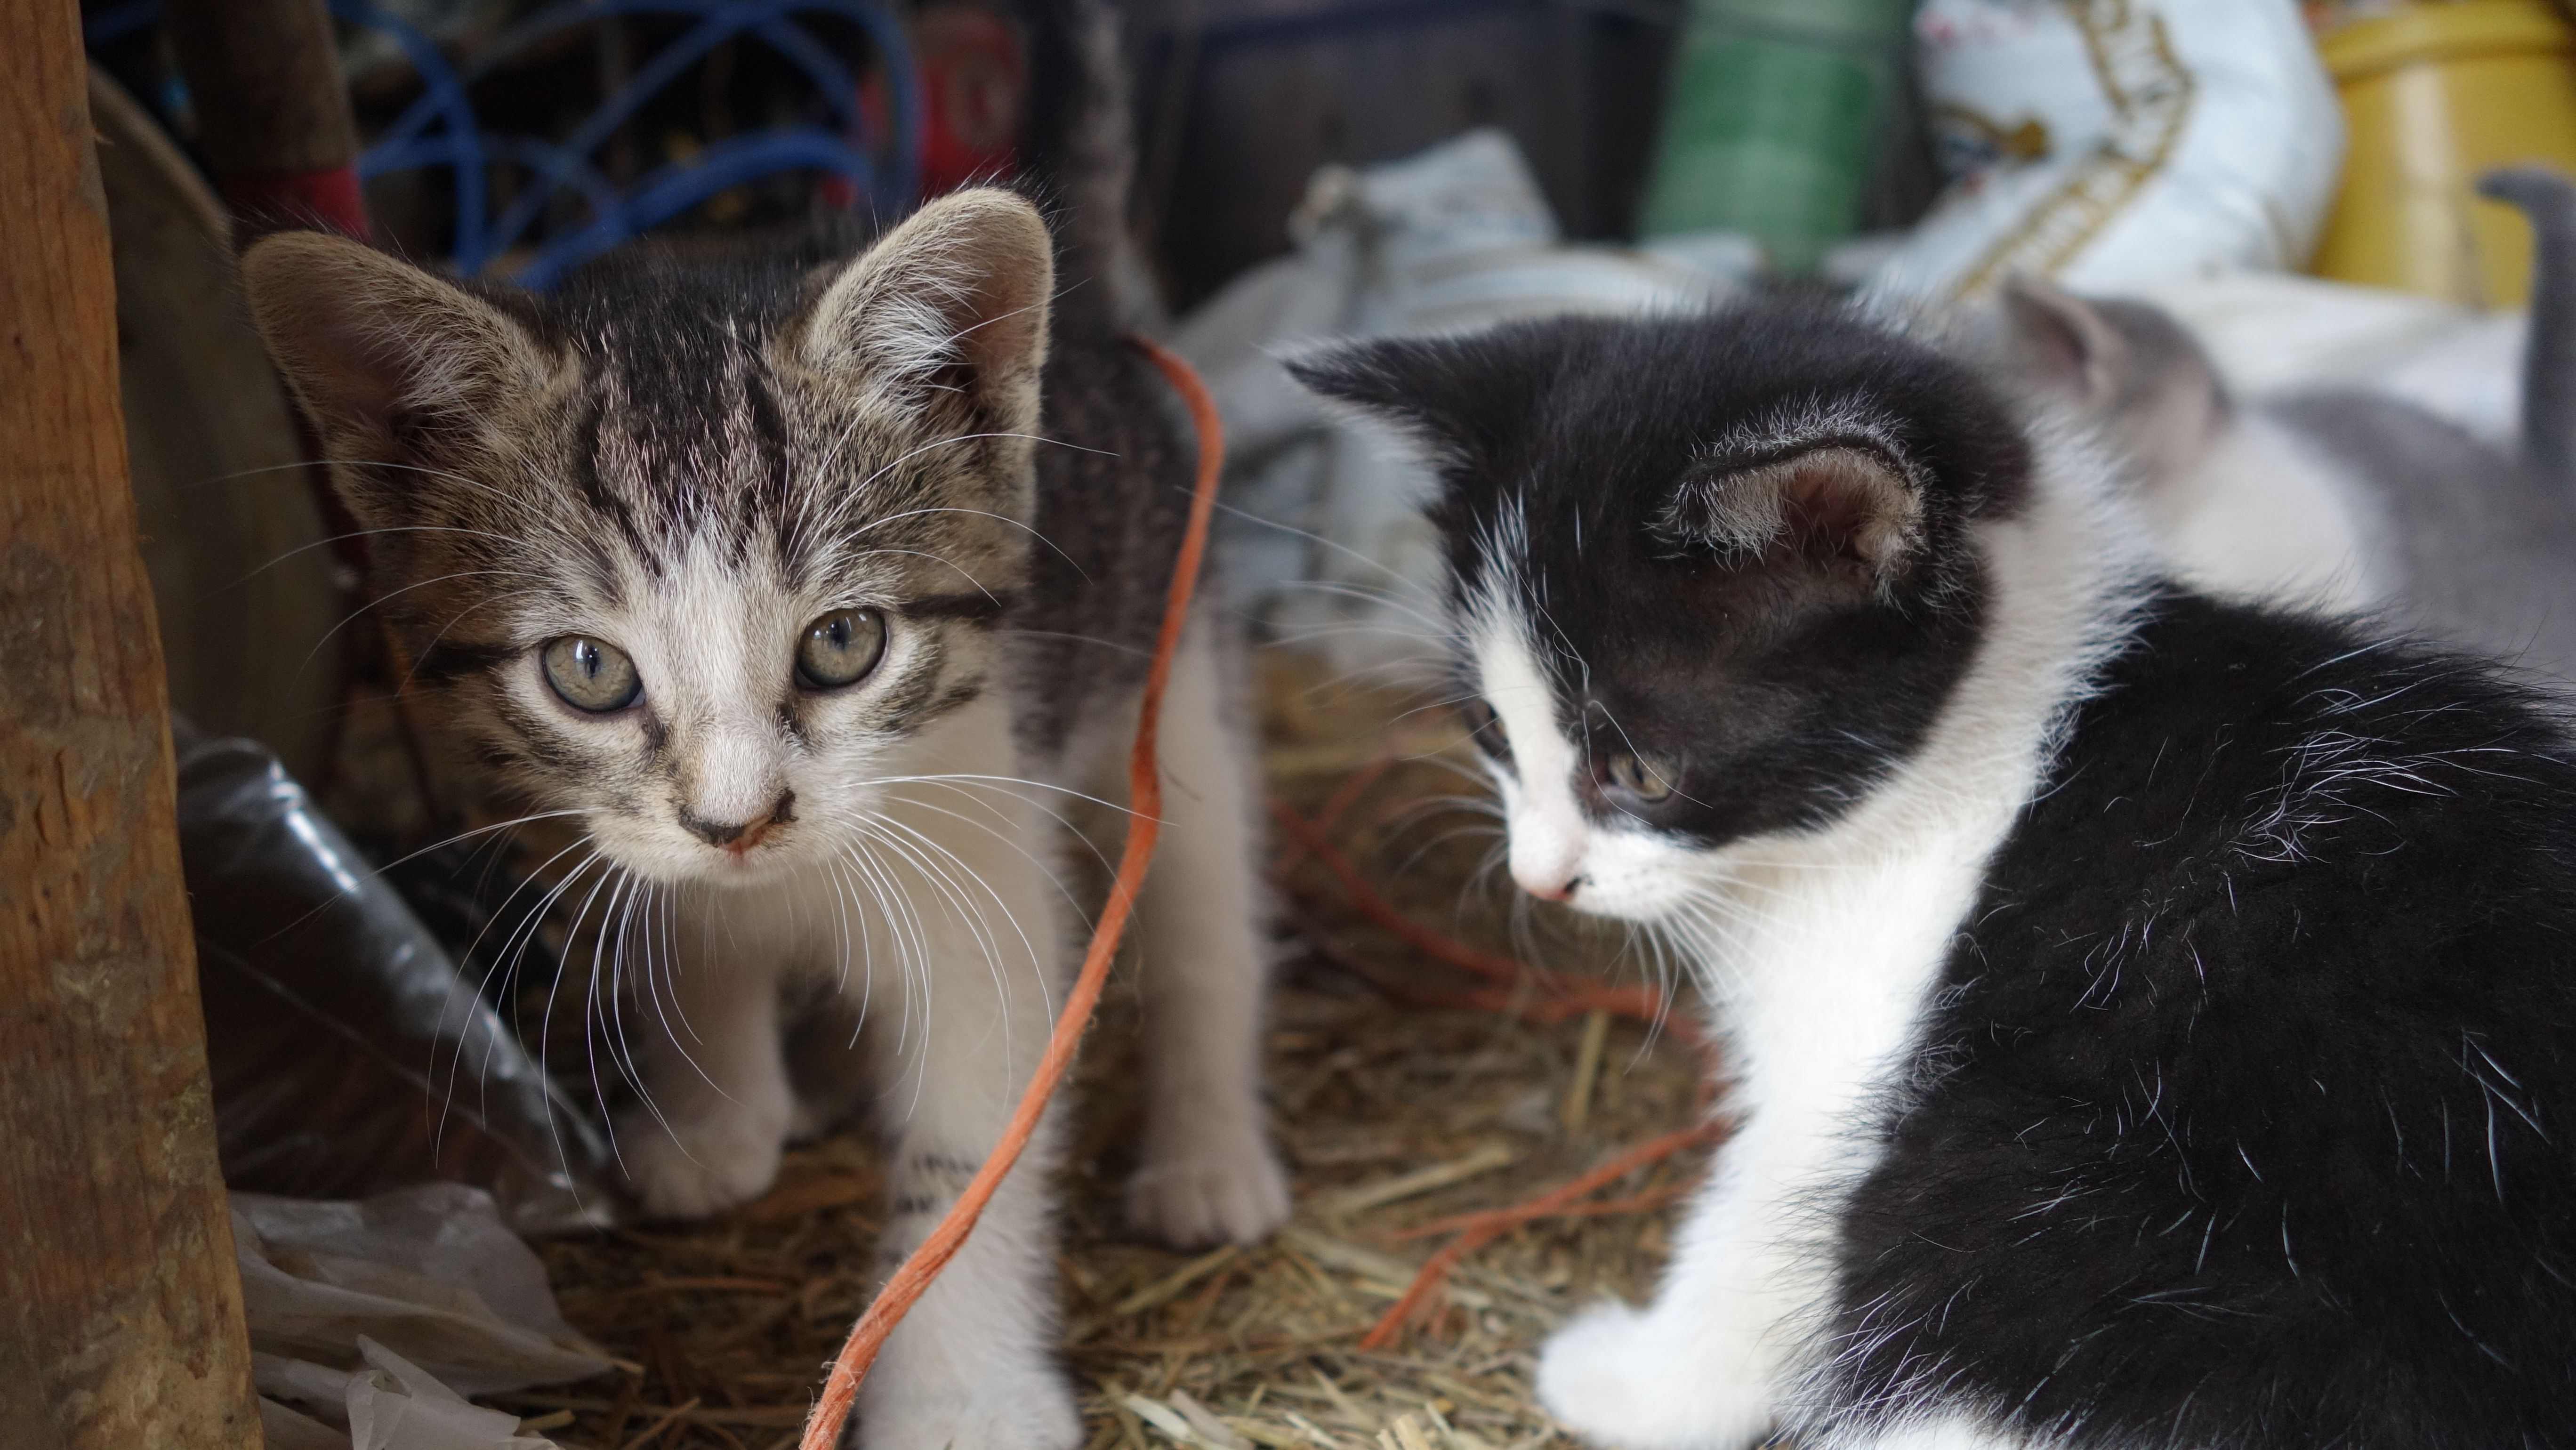 Cats in a barn cats animals pictures